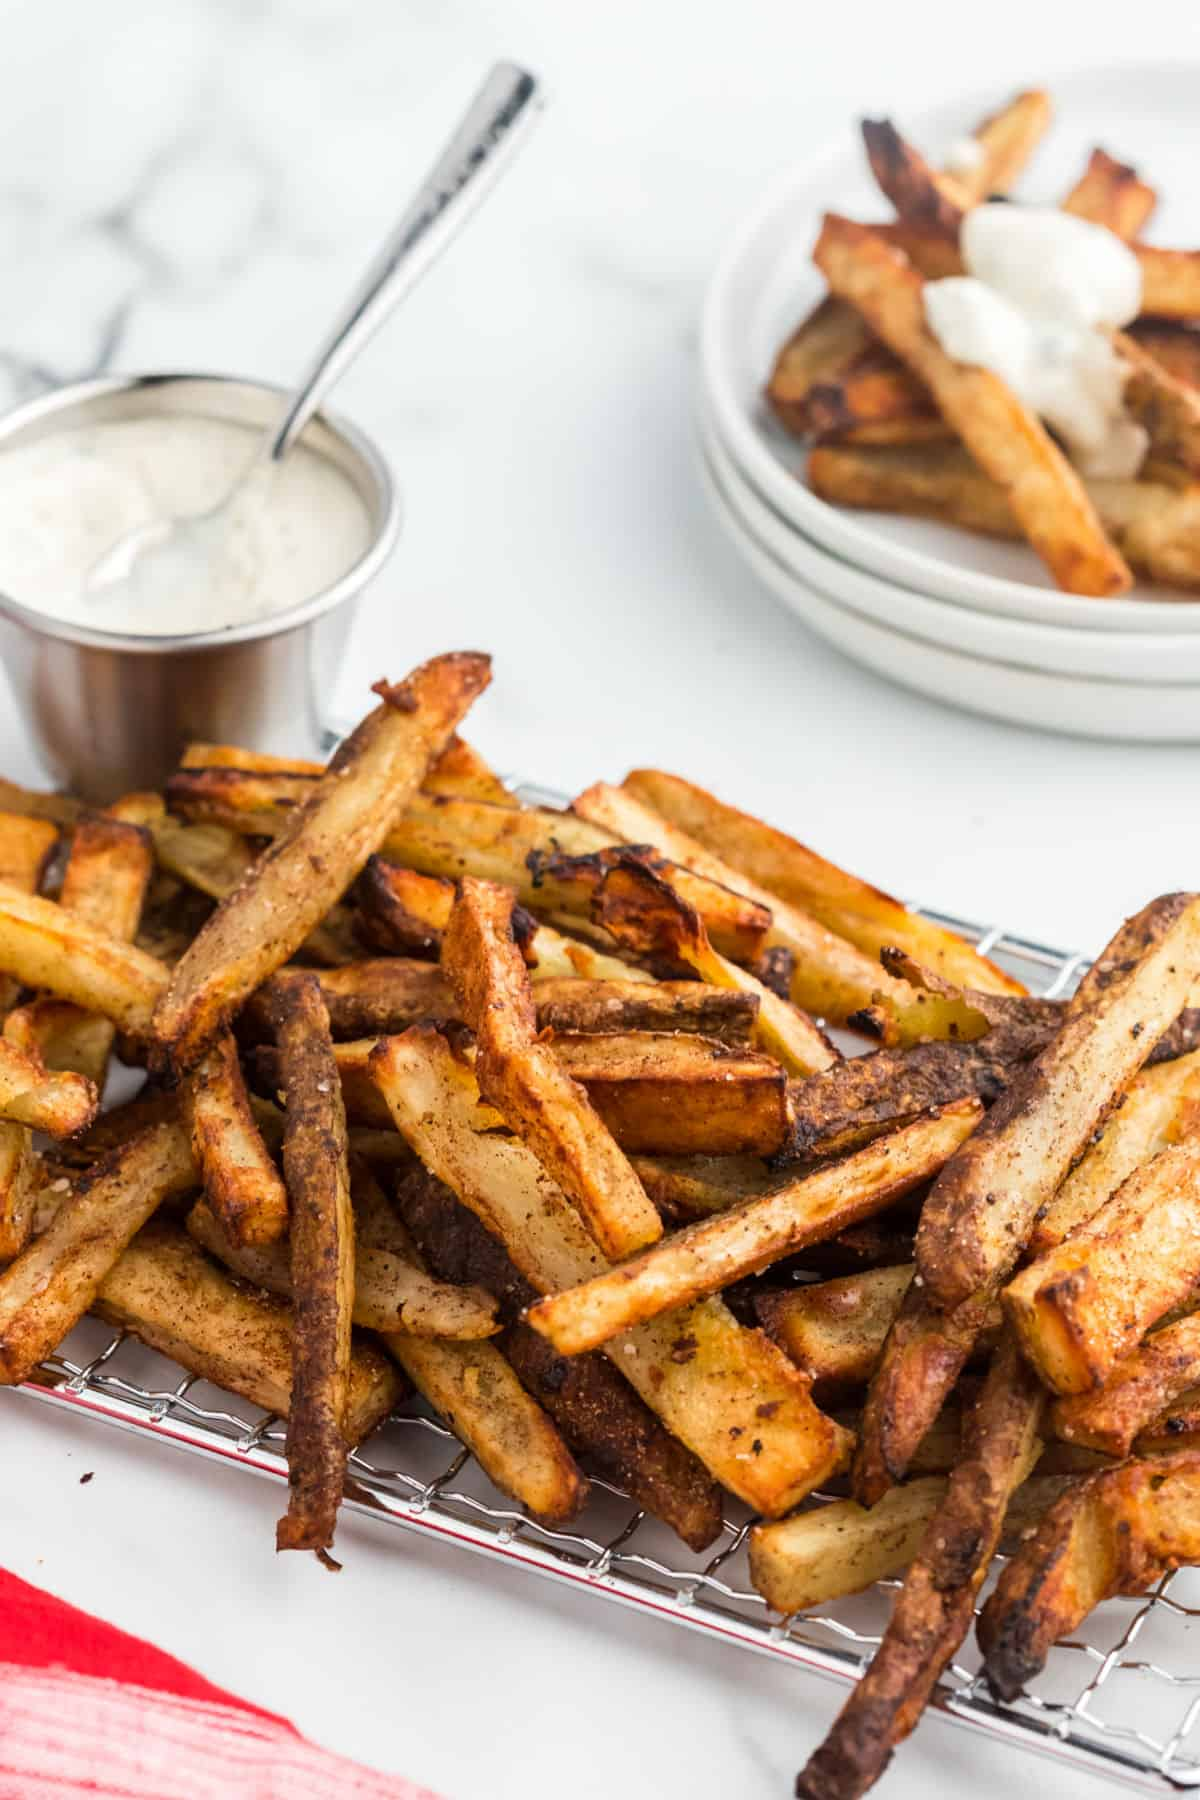 Baked french fries with a side bowl of blue cheese dressing.